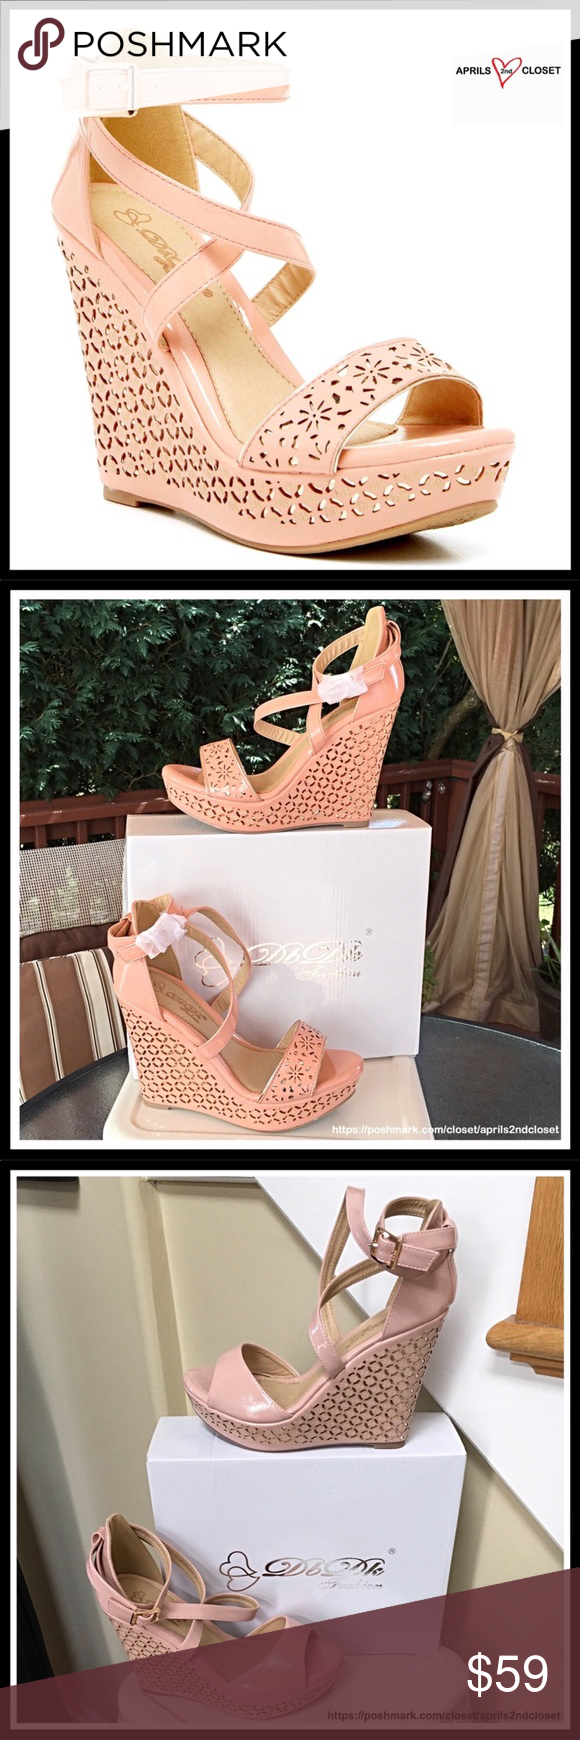 b4a0f49883b7 BLUSH ANKLE STRAP ESPADRILLE WEDGE SANDALS ELEGANT BLUSH ANKLE STRAP  ESPADRILLE WEDGE SANDALS NEW IN BOX